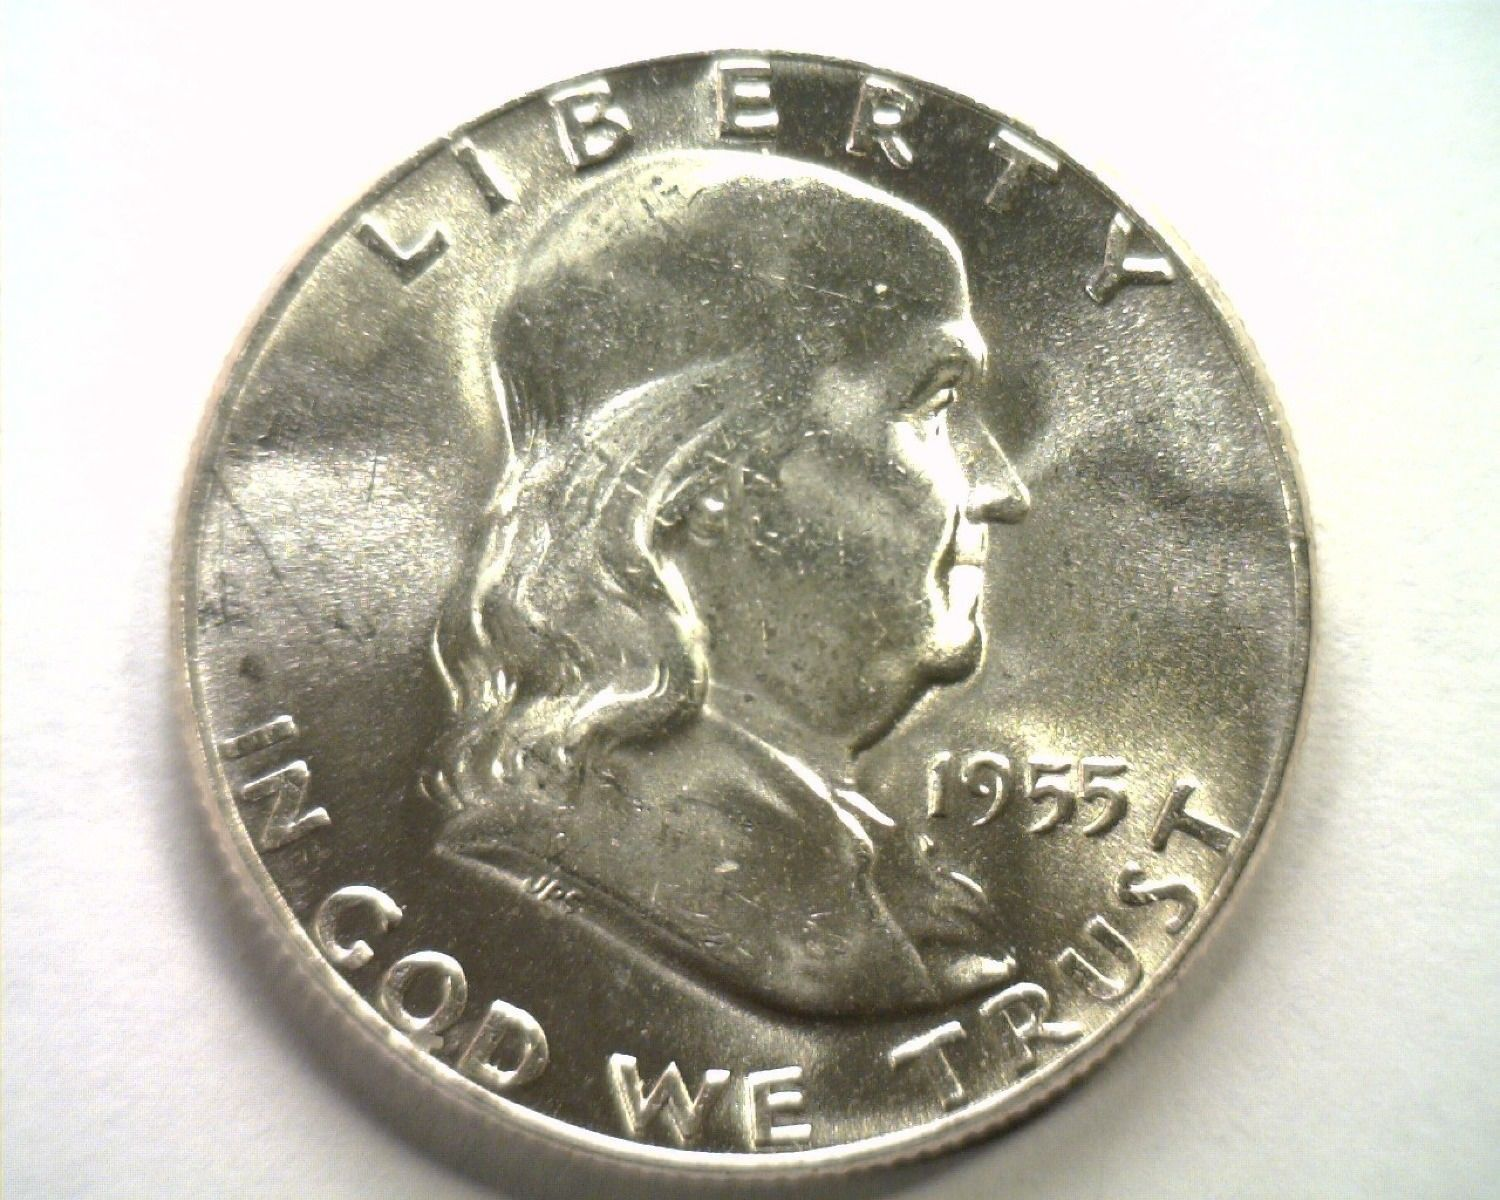 Primary image for 1955 FRANKLIN HALF DOLLAR CHOICE UNCIRCULATED+ WHITE CH. UNC+ NICE ORIGINAL COIN